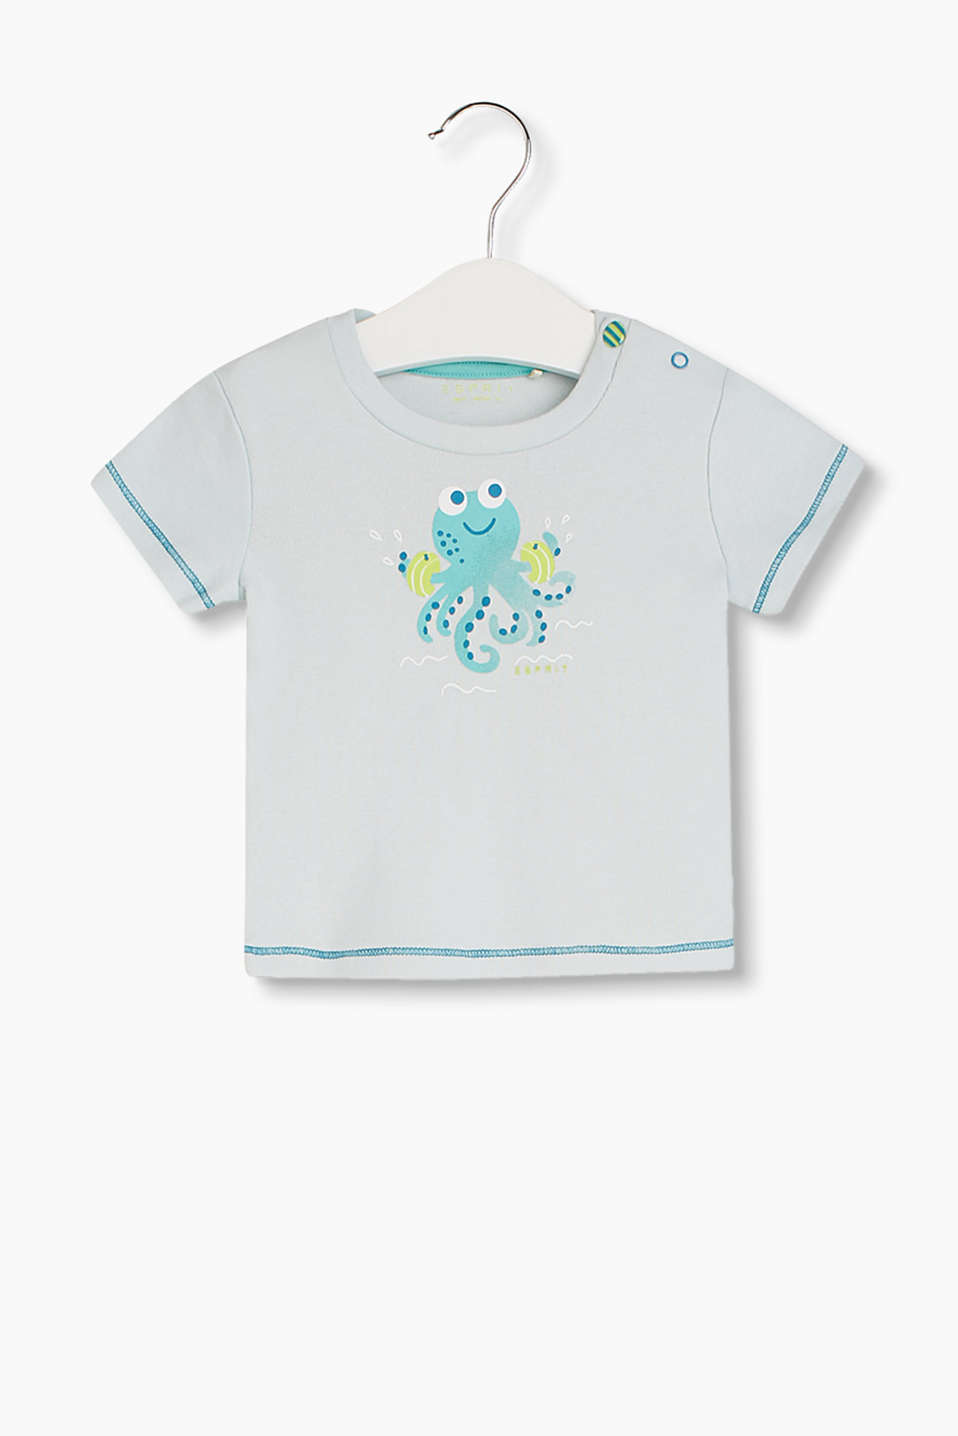 Esprit organic cotton printed t shirt at our online shop for Organic cotton t shirt printing